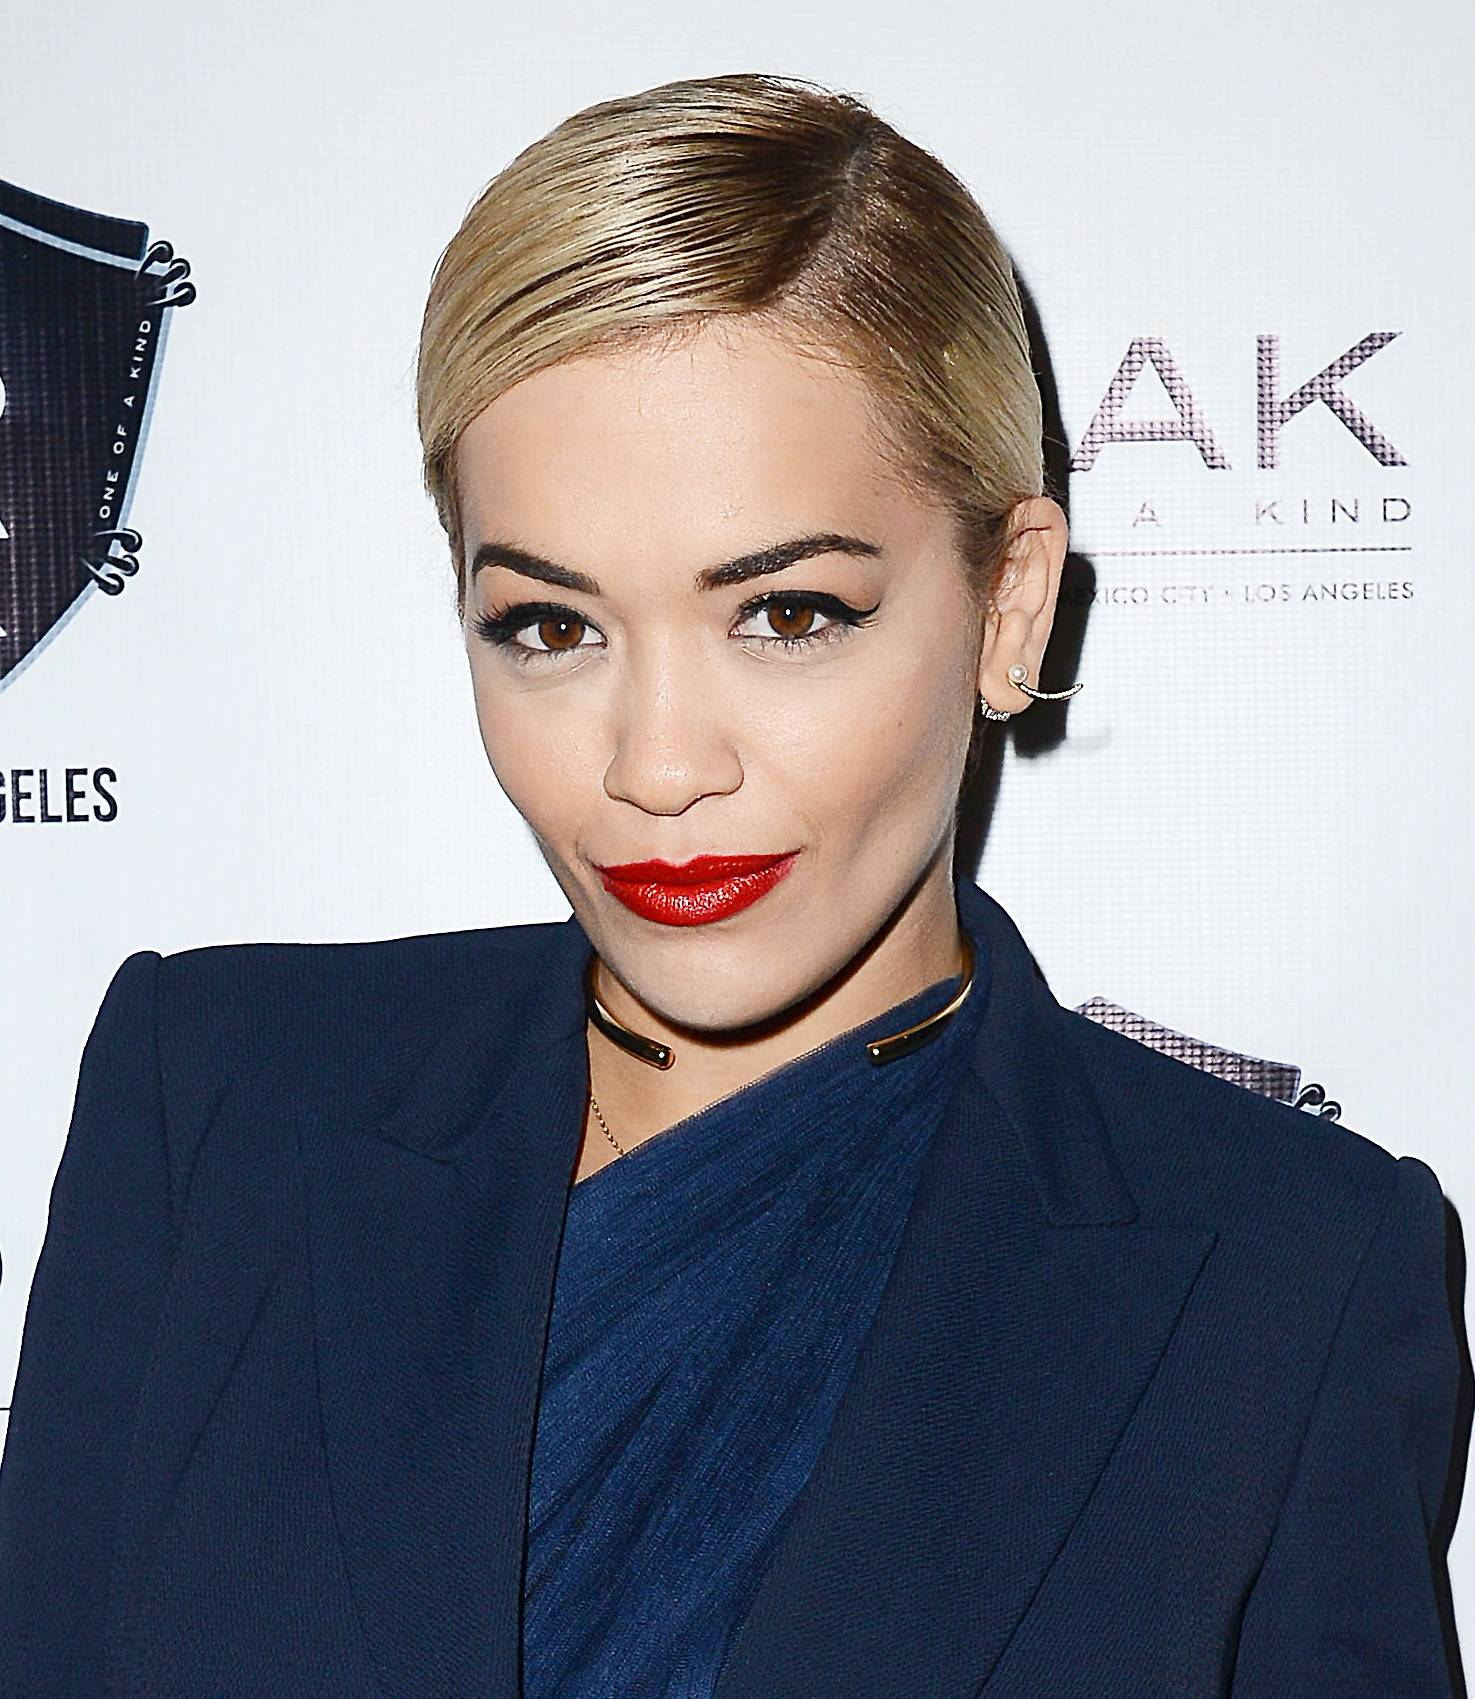 """Rita Ora - In March 2013, Azealiaengaged in a cyber-beef with Roc Nation's Rita Ora, taking their behind-the-scenes tension at the Future Music Festival spread to Instagram when she called Rita """"thirsty"""" and claimed, """"She?s mad she's Rihanna's understudy.""""Rita responded, ?At the end of the day I don?t know who the f**k u think u think you are secondly u don?t know me I?ve done nothing but try b nice to u 3rdly ur dancers were talkn to me further mire ill see ur a** at the motherf**kin concert.?Thankfully cooler heads prevailed.(Photo: All Access Photo/Splash News)"""